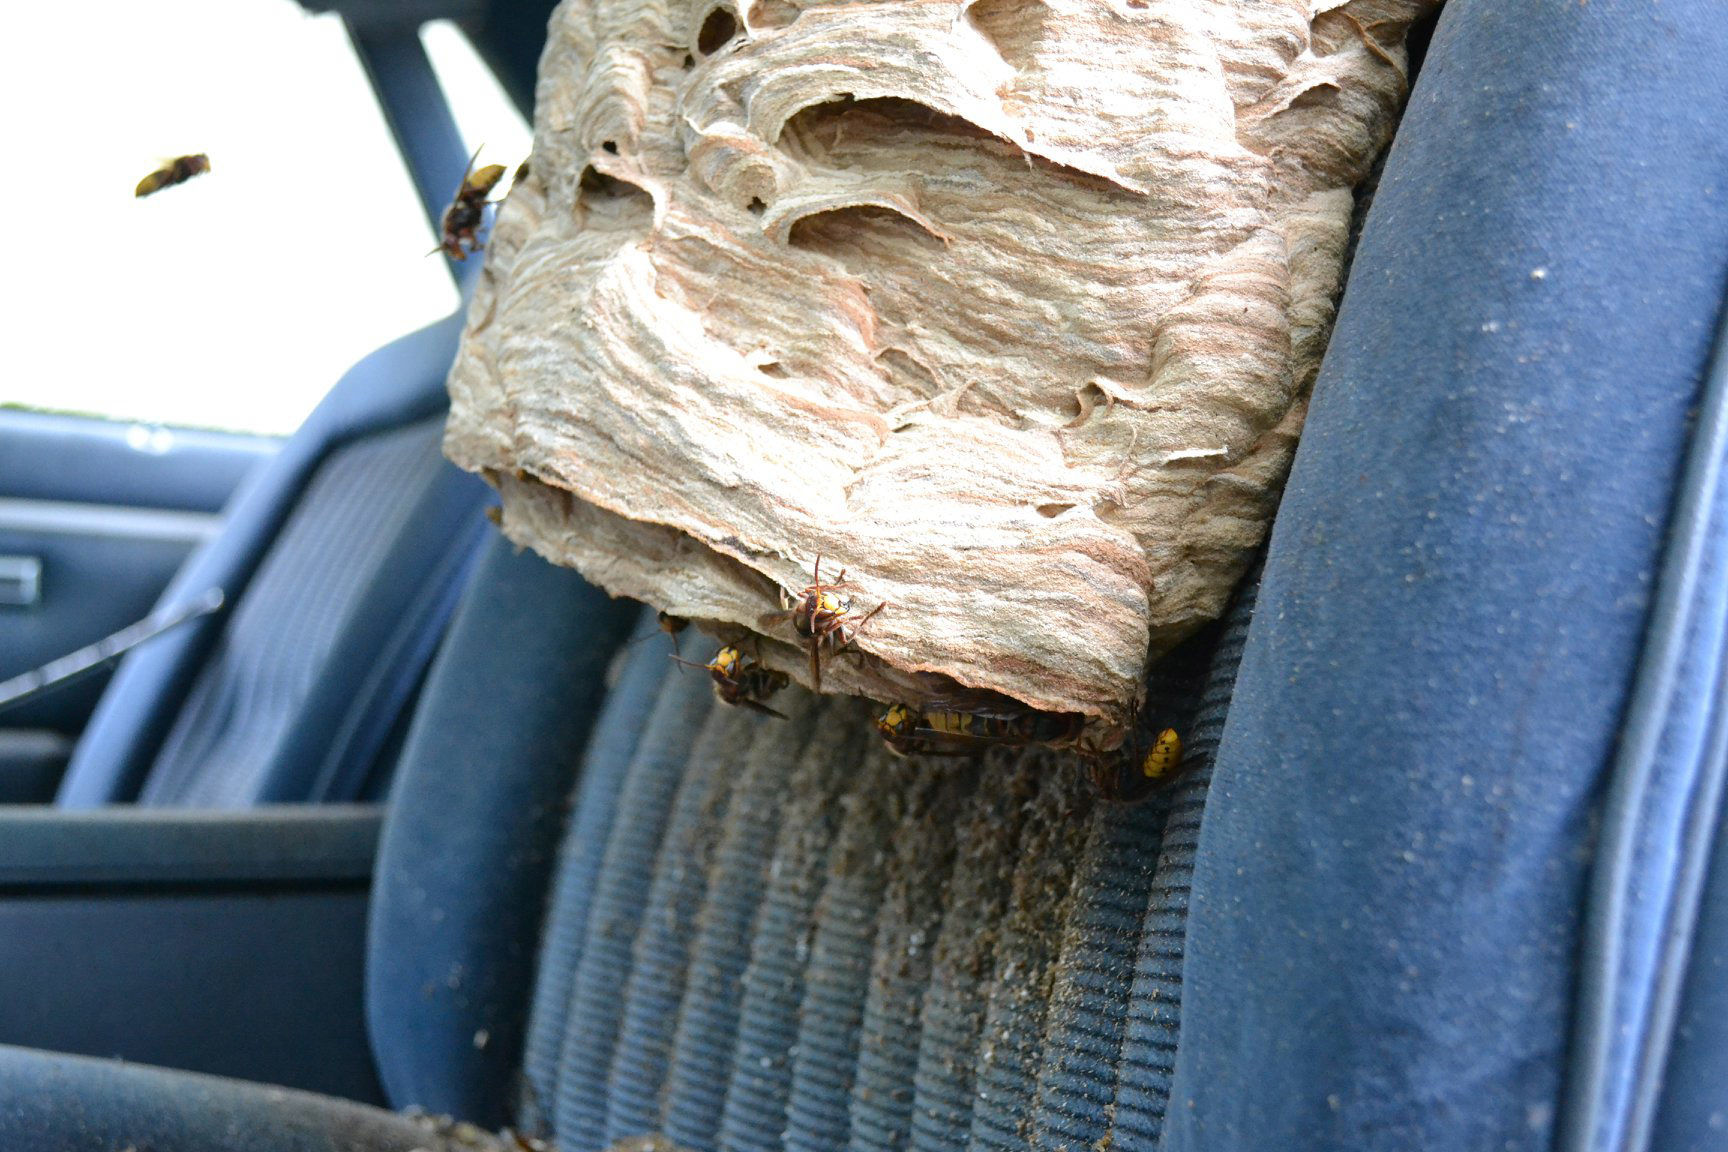 Ohio Bee Service Flushes Hundreds Of Hornets From Their